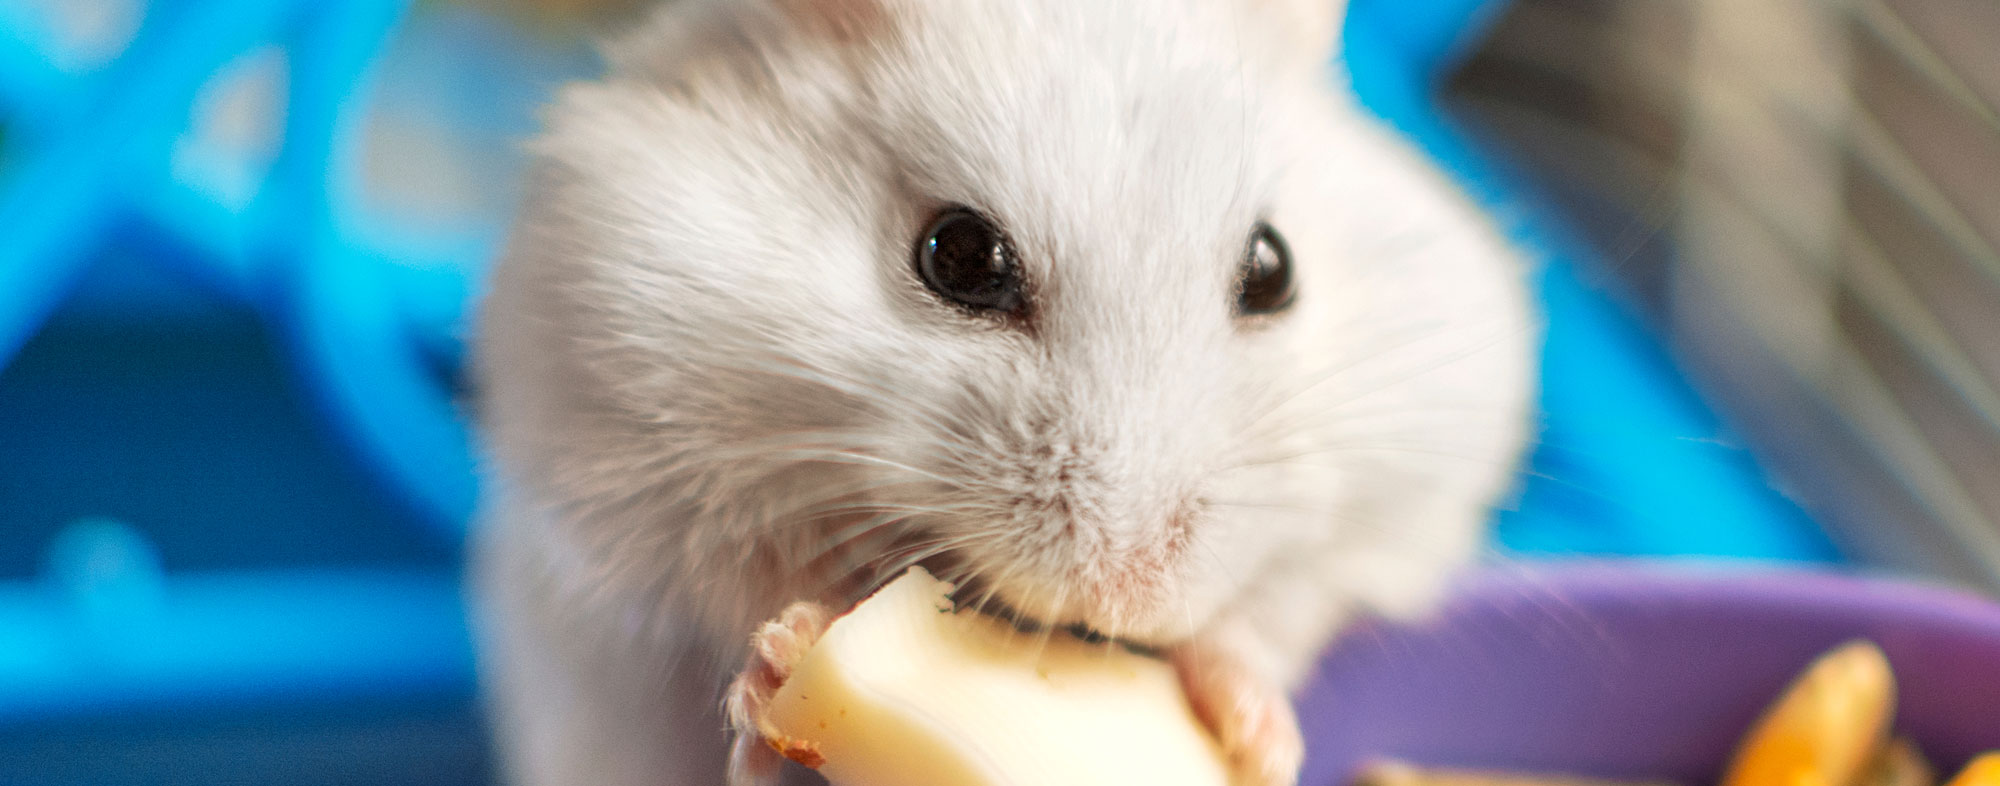 Keep your small animal fed to deter escape from their cage or habitat